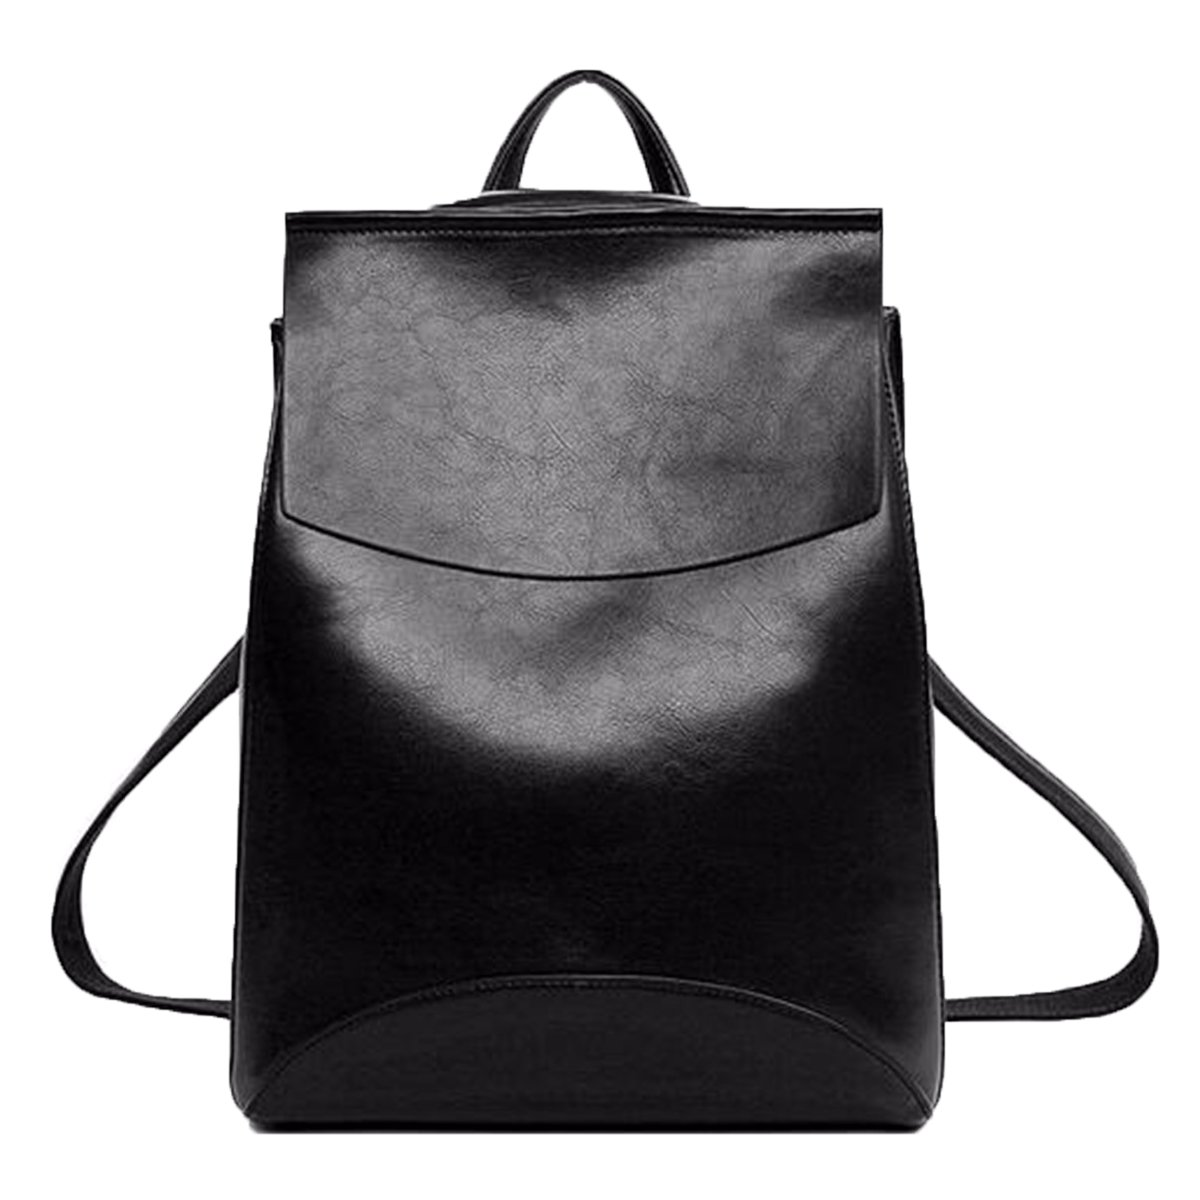 acaa53857 Get Quotations · Women Vintage Leather Backpack,Charminer Leather Backpack  Casual Daypack Handbags for Ladies Girls Black